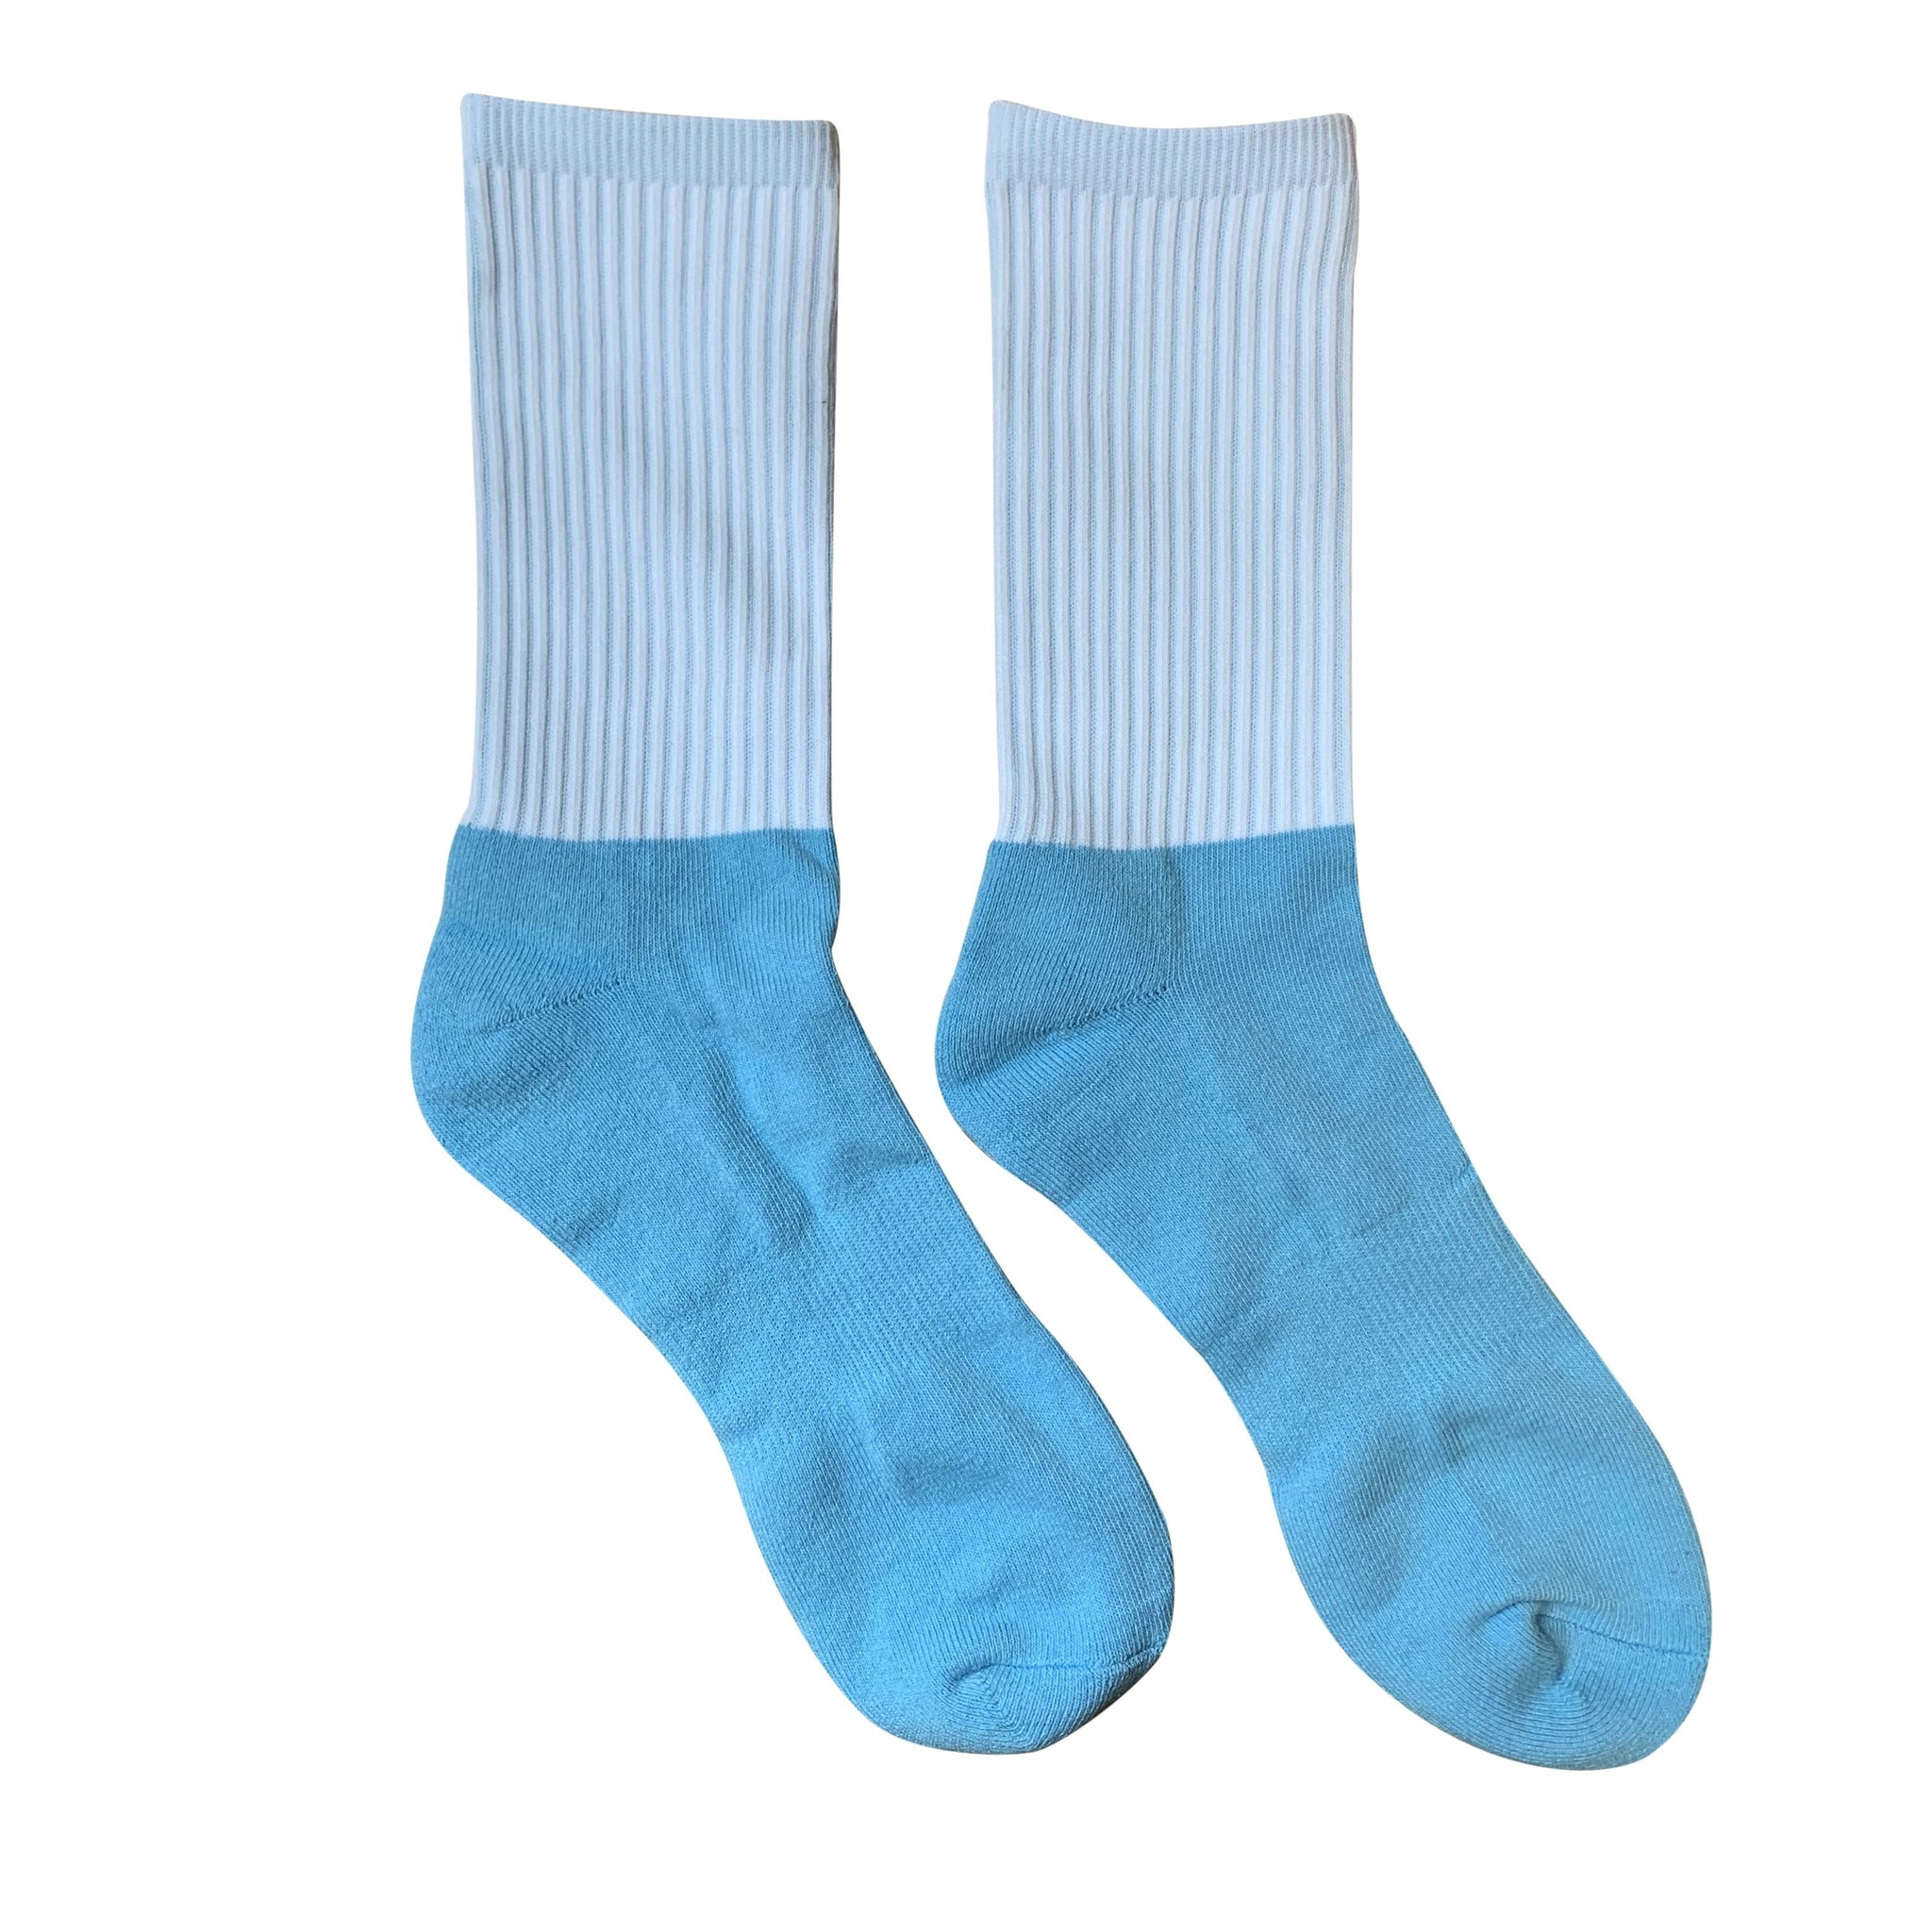 Blank Athletic Socks for Sublimation - Cotton Bottom